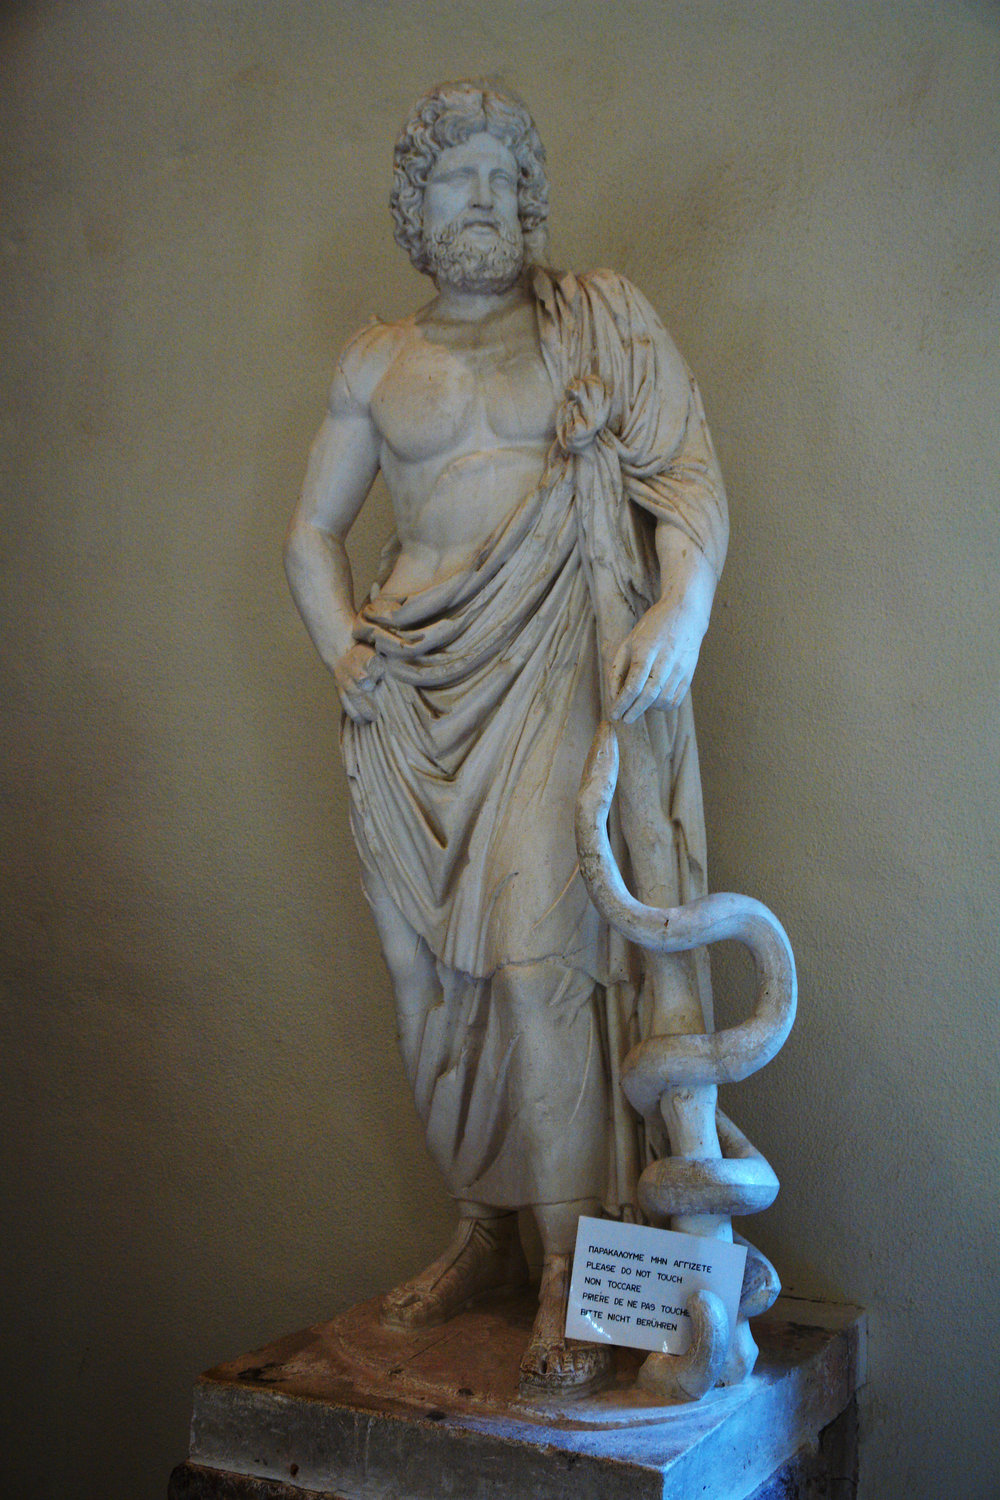 Asclepius with his serpent-entwined staff, Archeological Museum of Epidaurus, Greece. He definitely looks like he consumes a Mediterranean diet and gets his exercise, doesn't he?